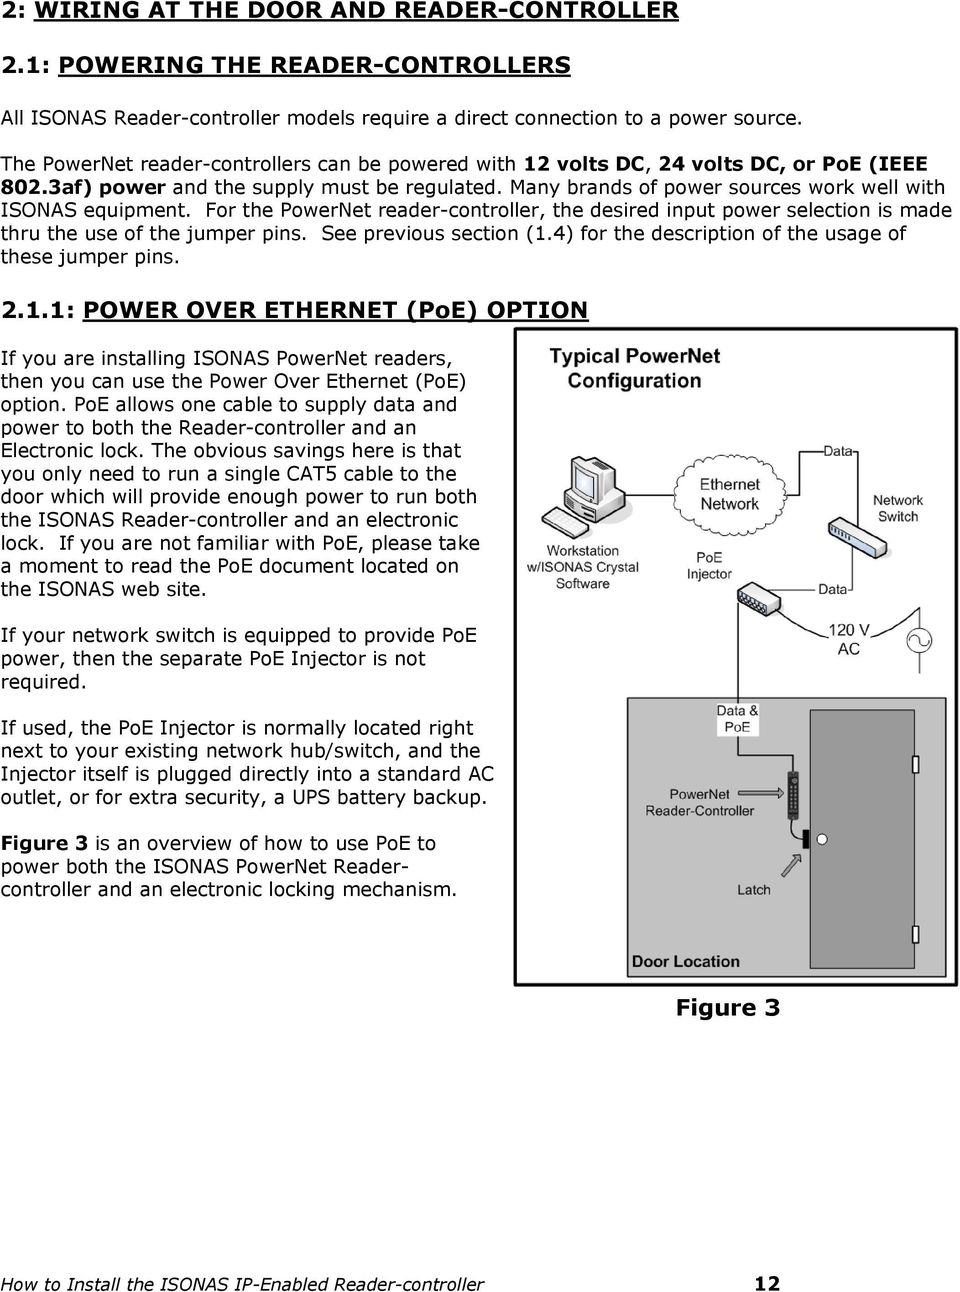 Amazing Wiring Diagram Cat5 To Dmx Festooning - Electrical Diagram ...